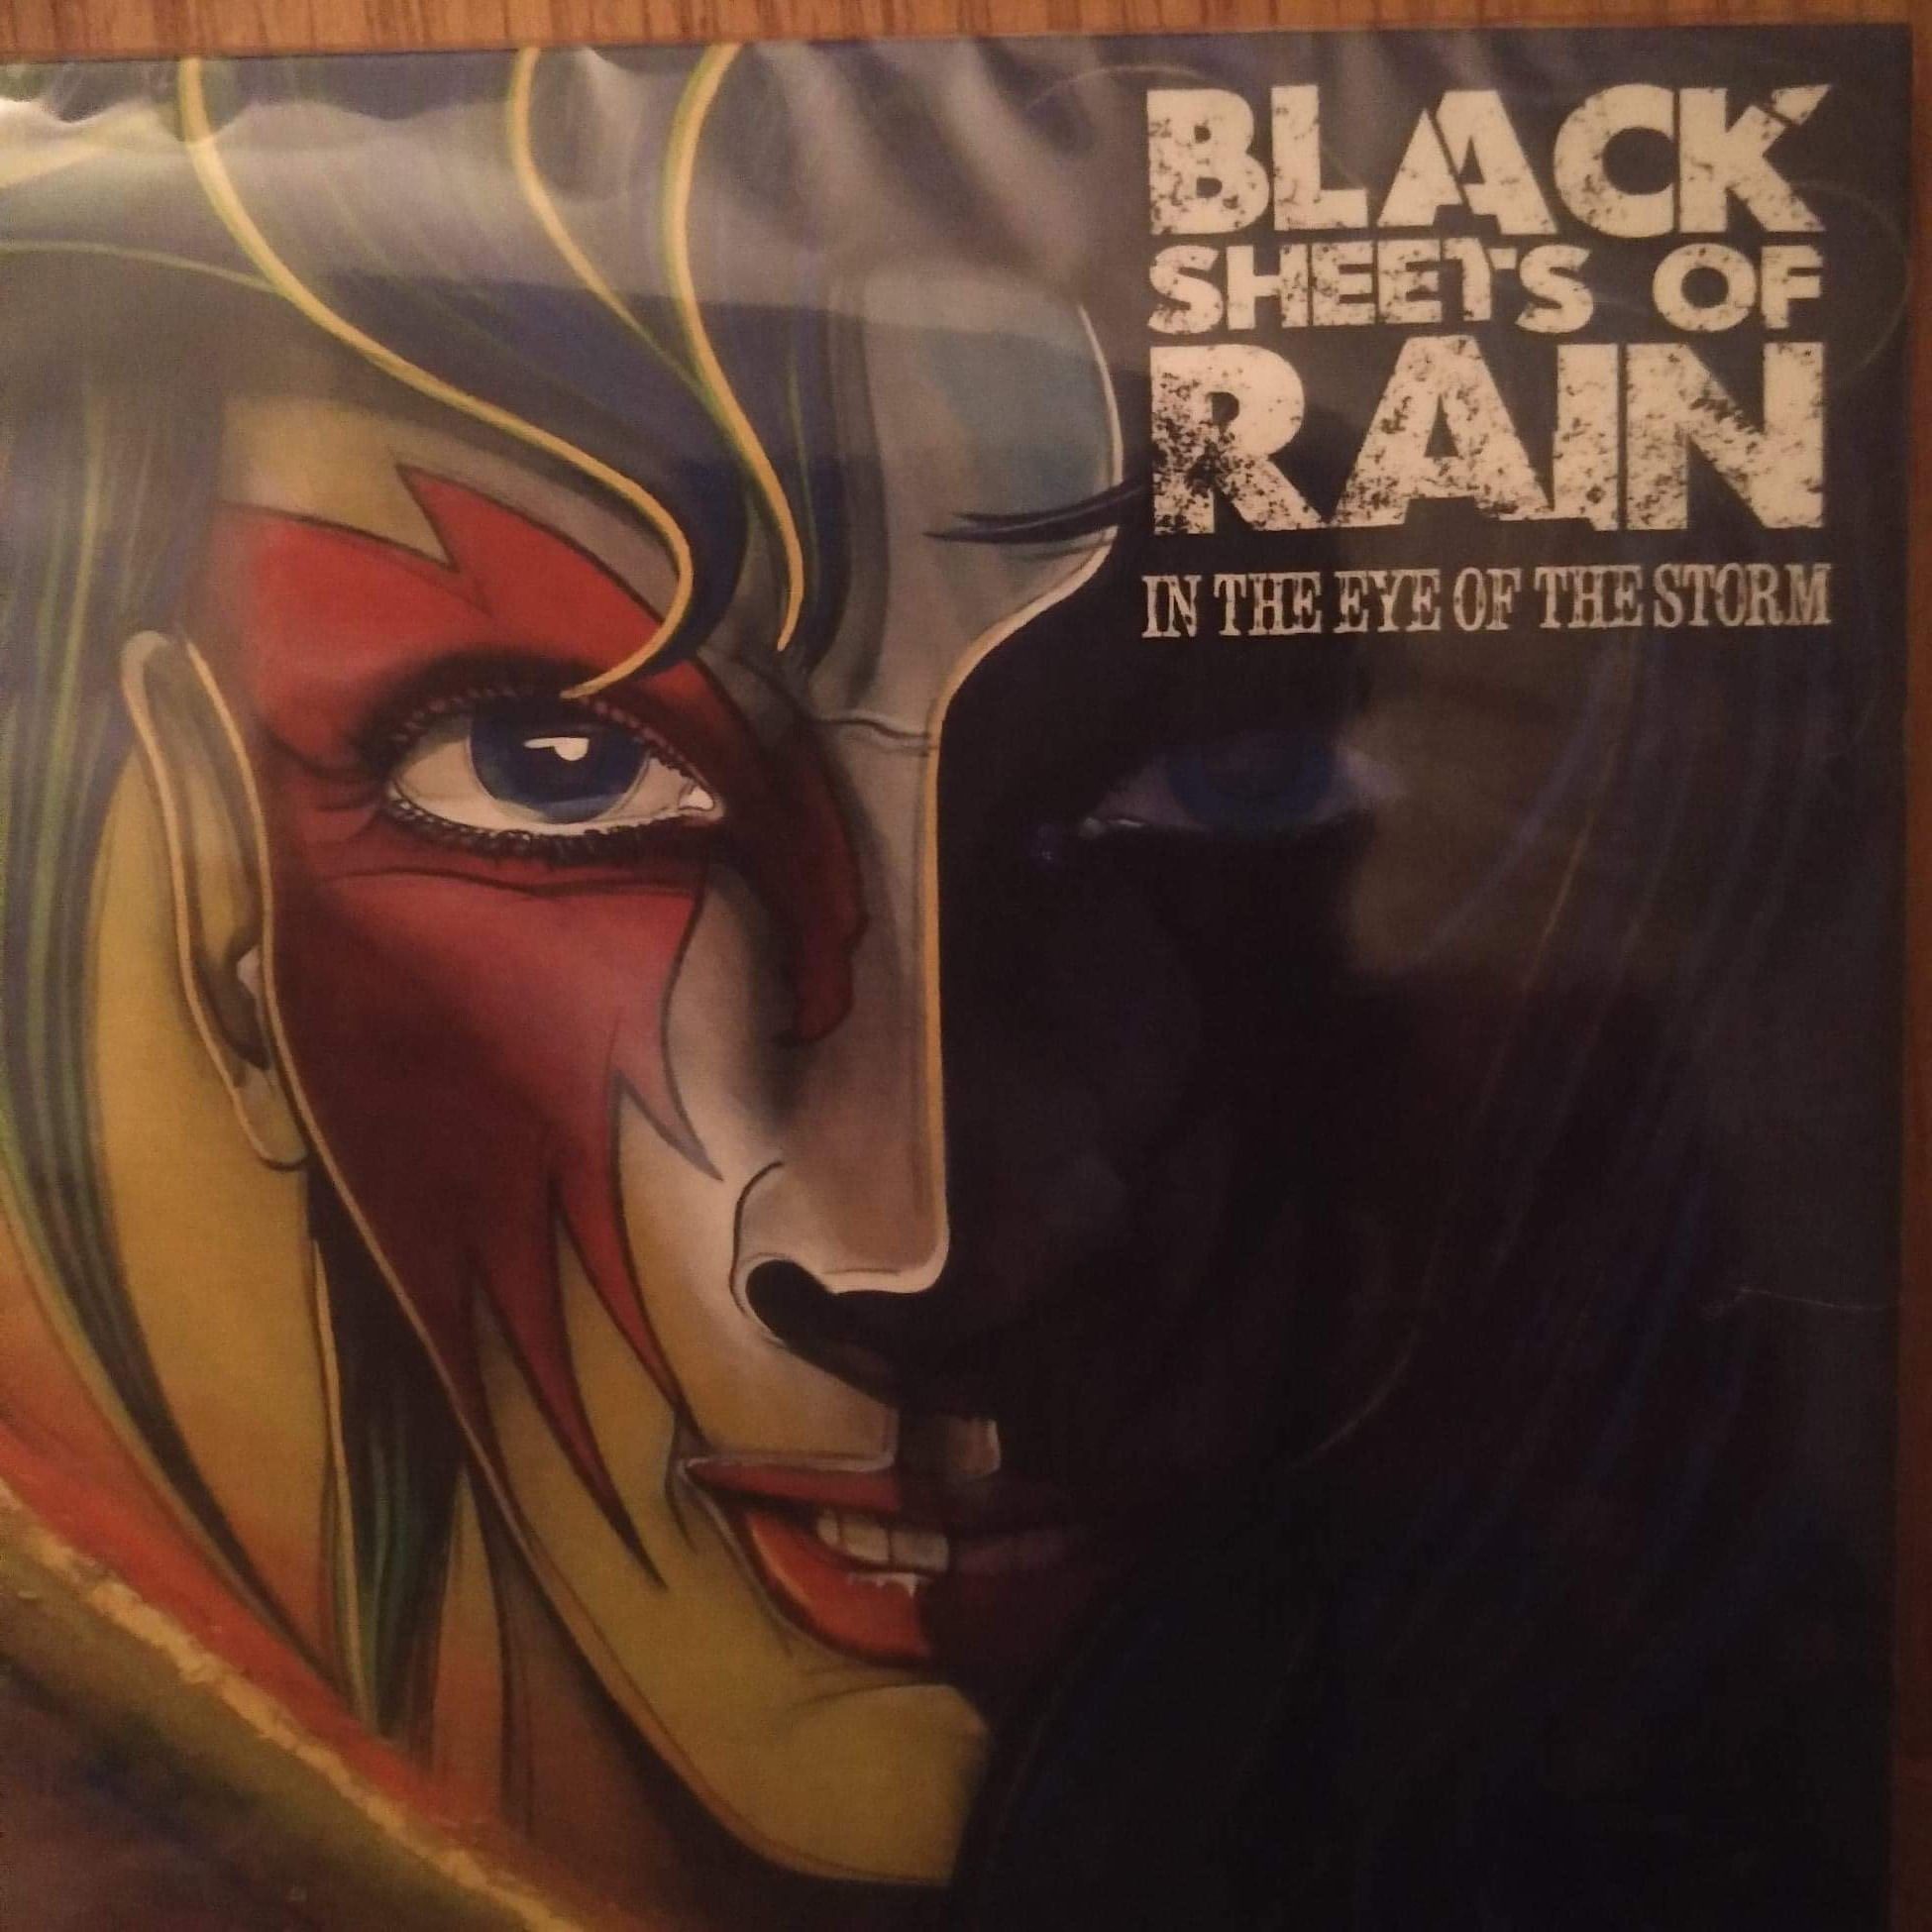 In The Eye of The Storm EP Digipack + free digital download - Black Sheets of Rain